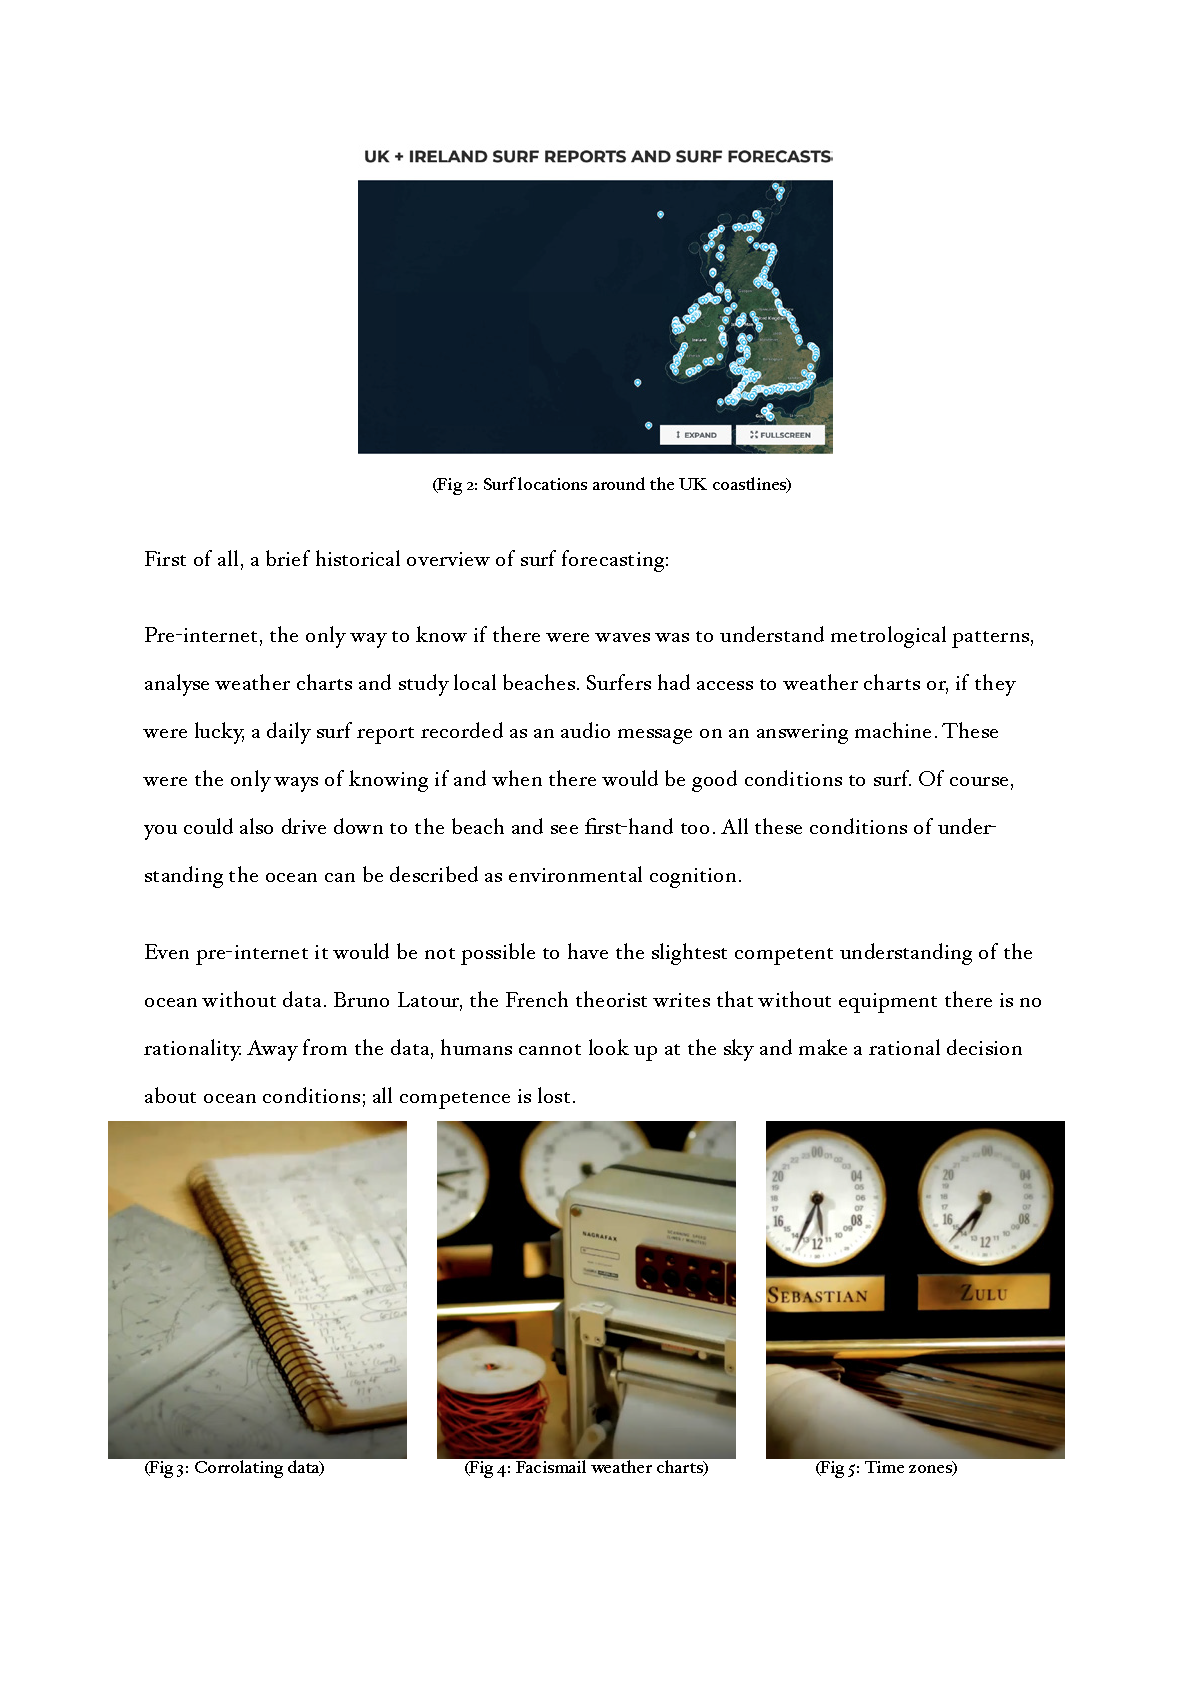 Research prj2_final_images_v2_Page_06